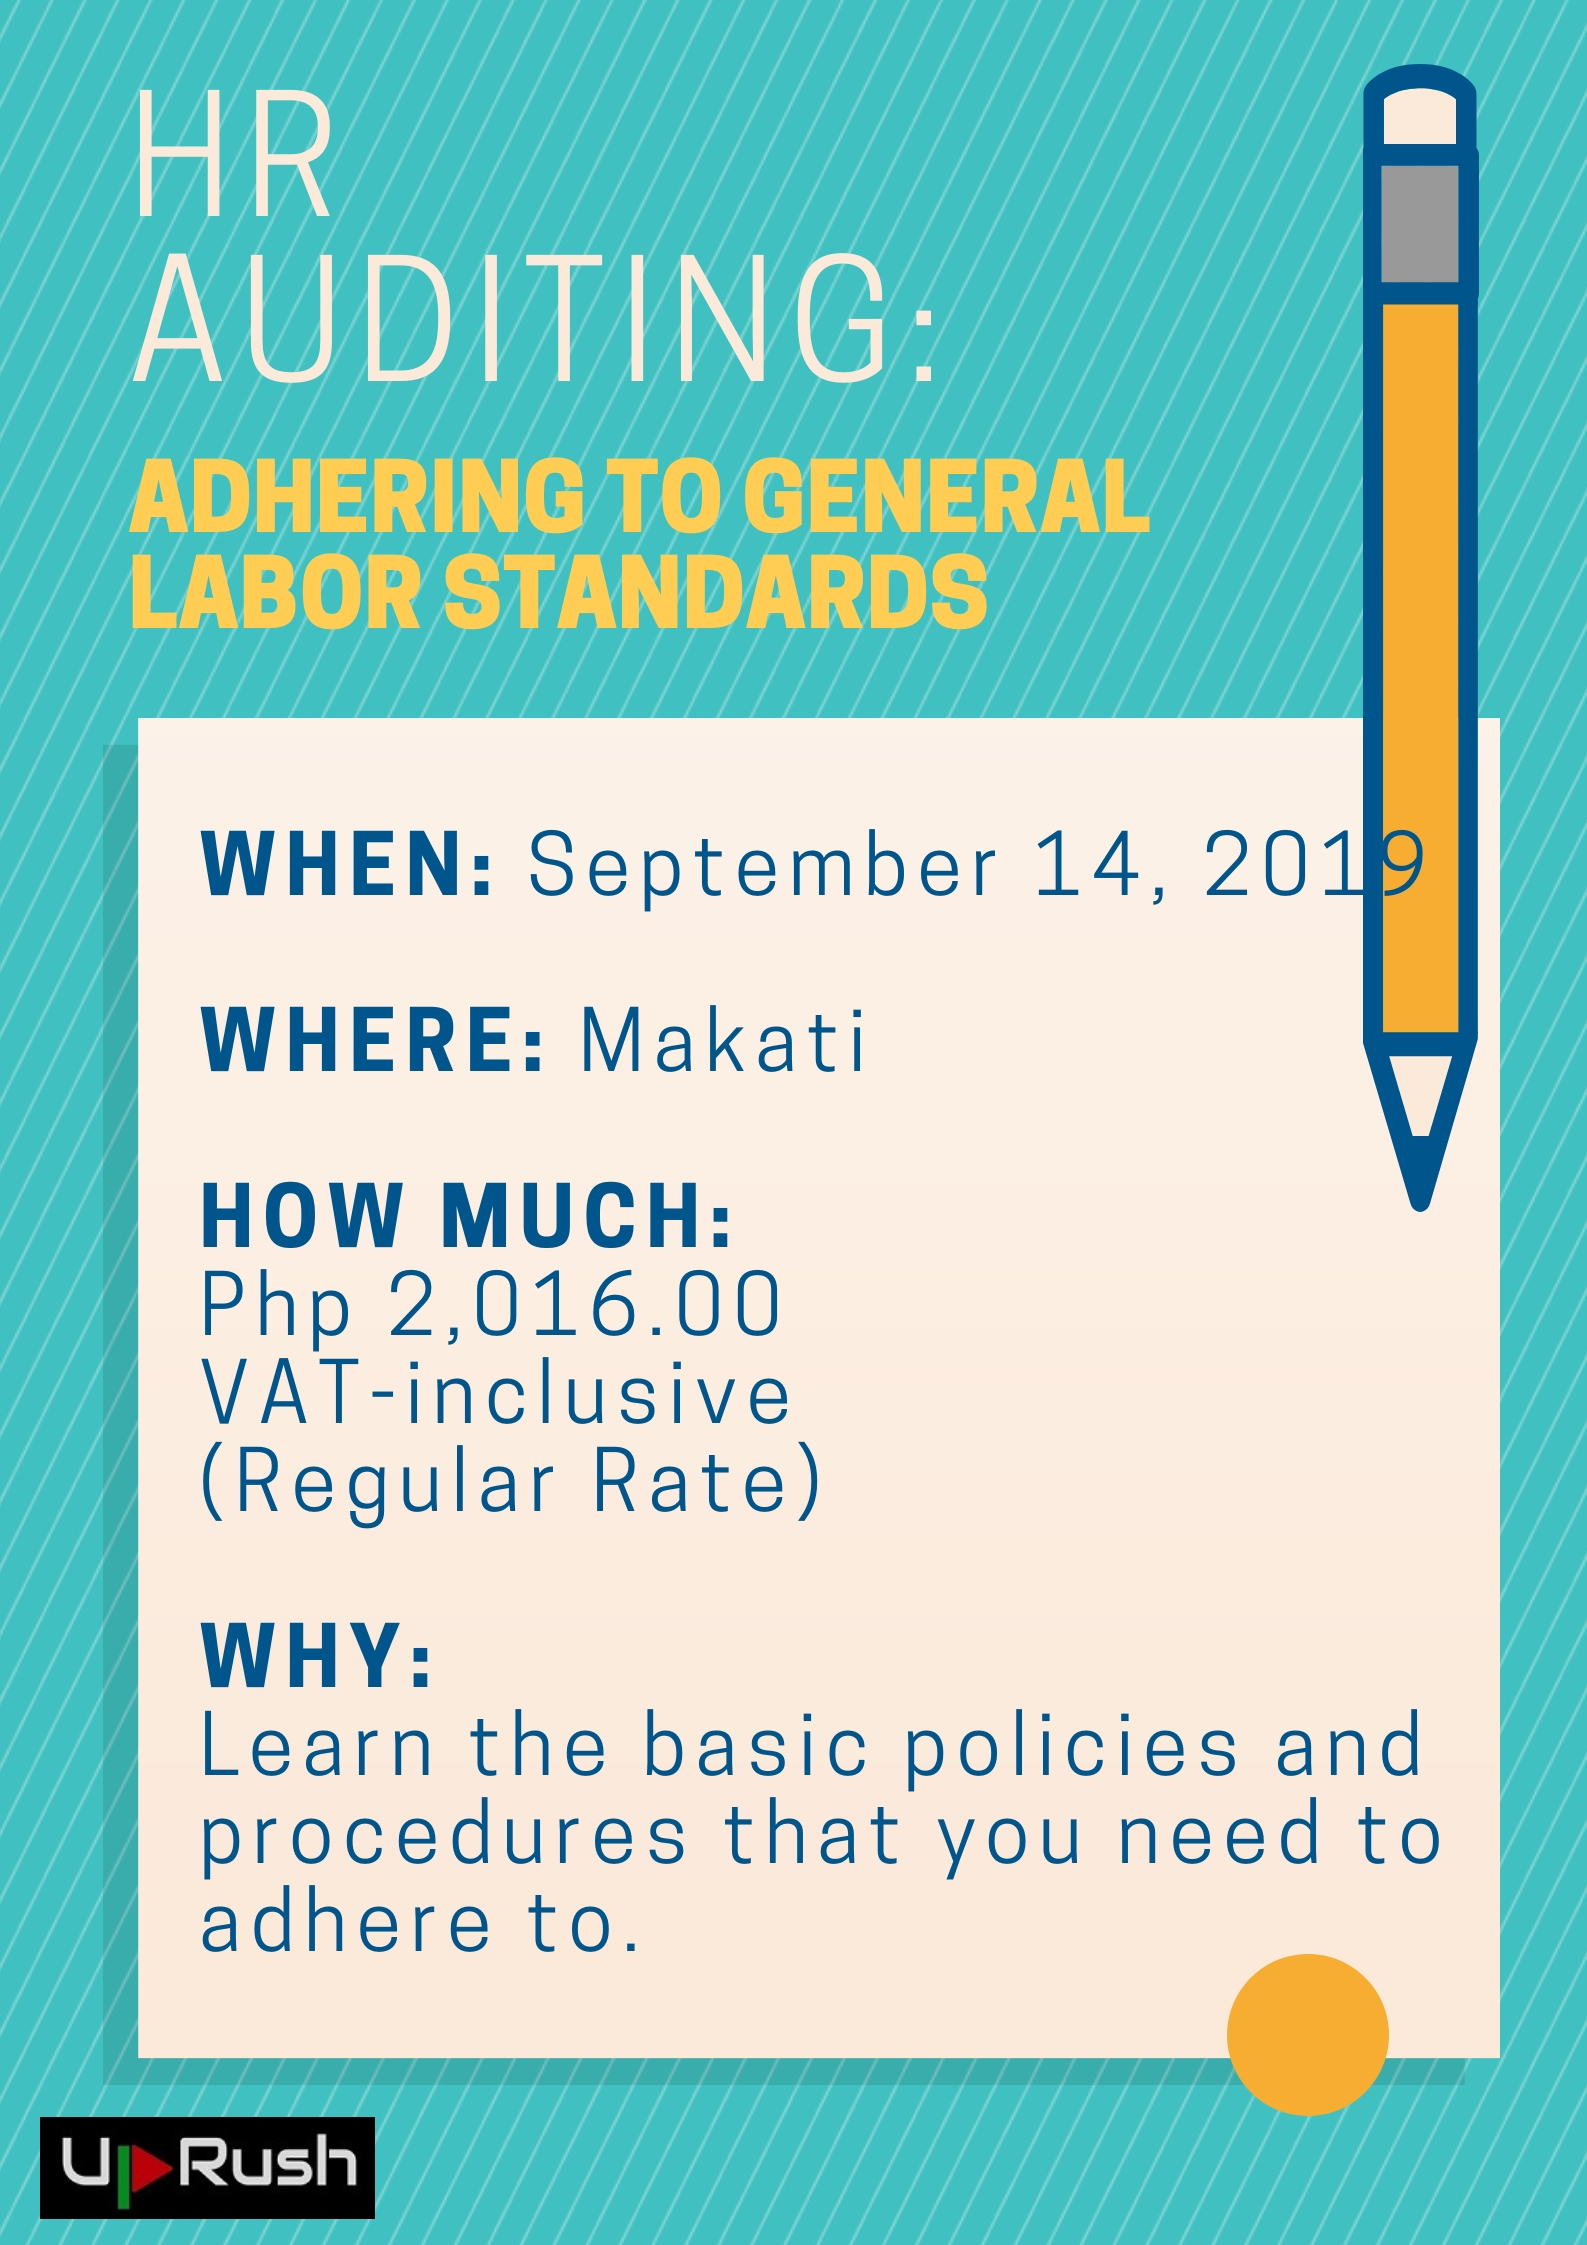 HR Auditing - Adhering to General Labor Standards